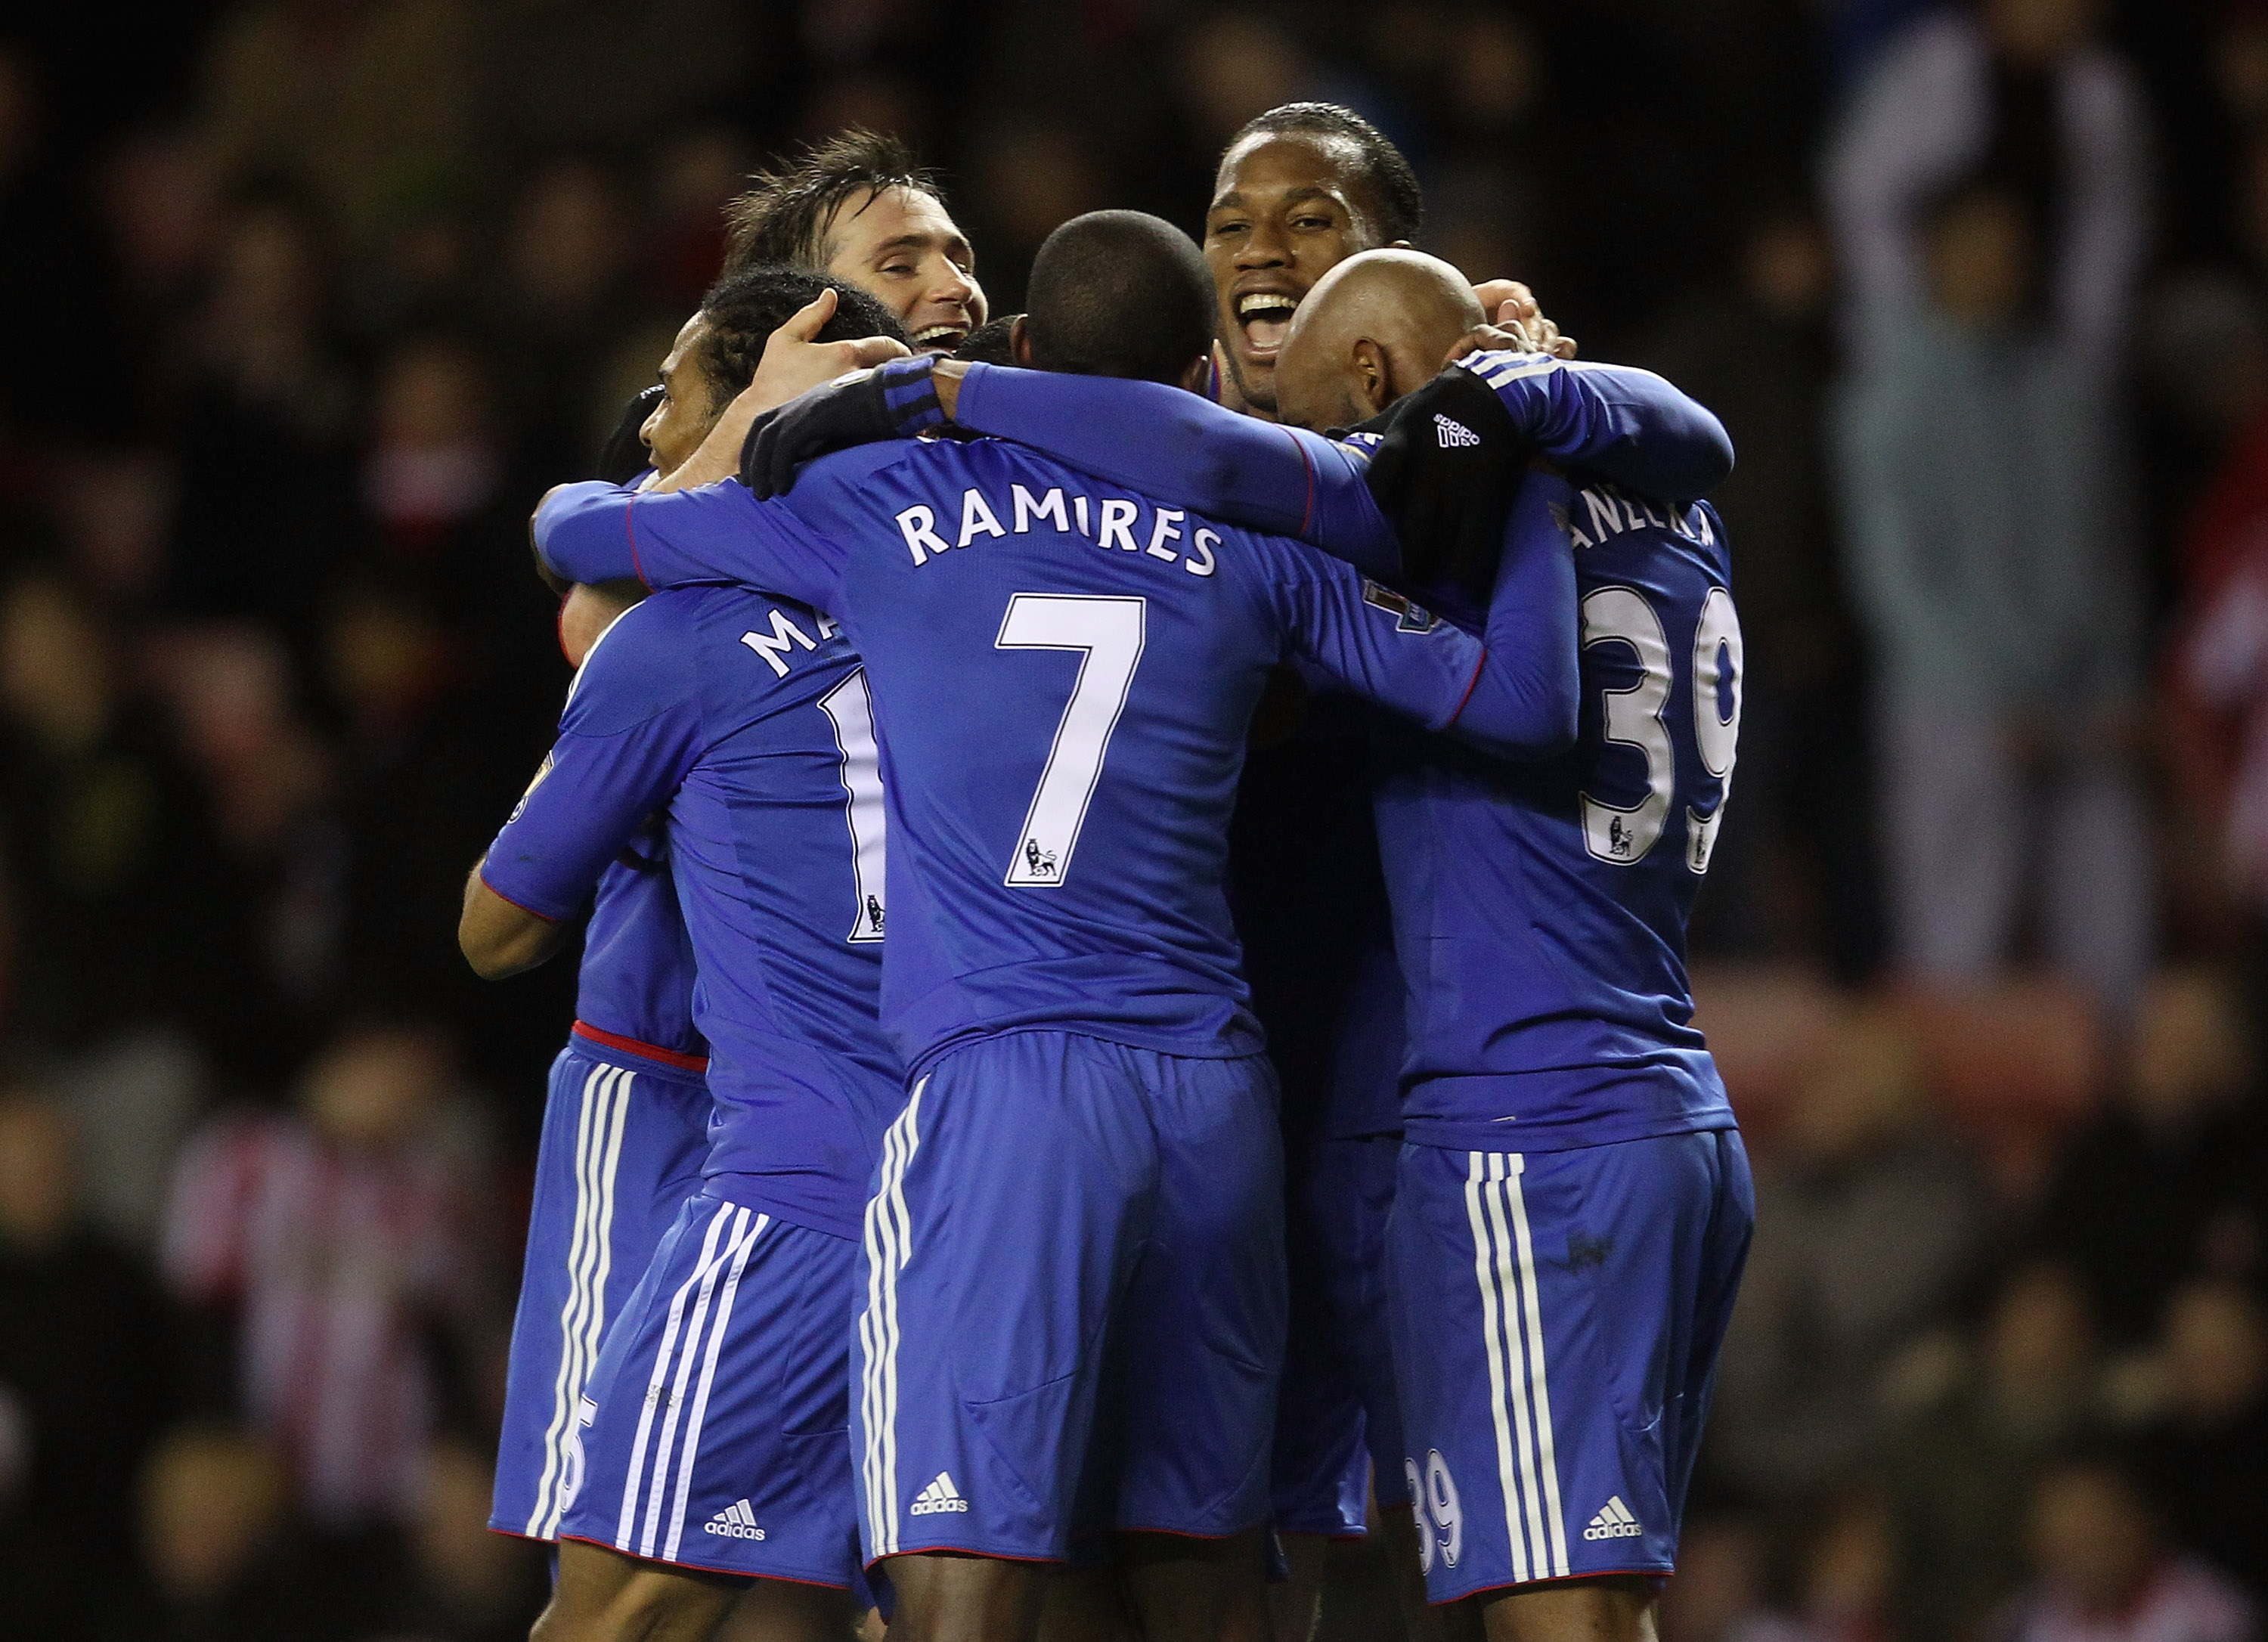 SUNDERLAND, ENGLAND - FEBRUARY 01:  Frank Lampard and Didier Drogba of Chelsea celebrate Nicolas Anelka's goal with team mates during the Barclays Premier League match between Sunderland and Chelsea at the Stadium of Light on February 1, 2011 in Sunderlan